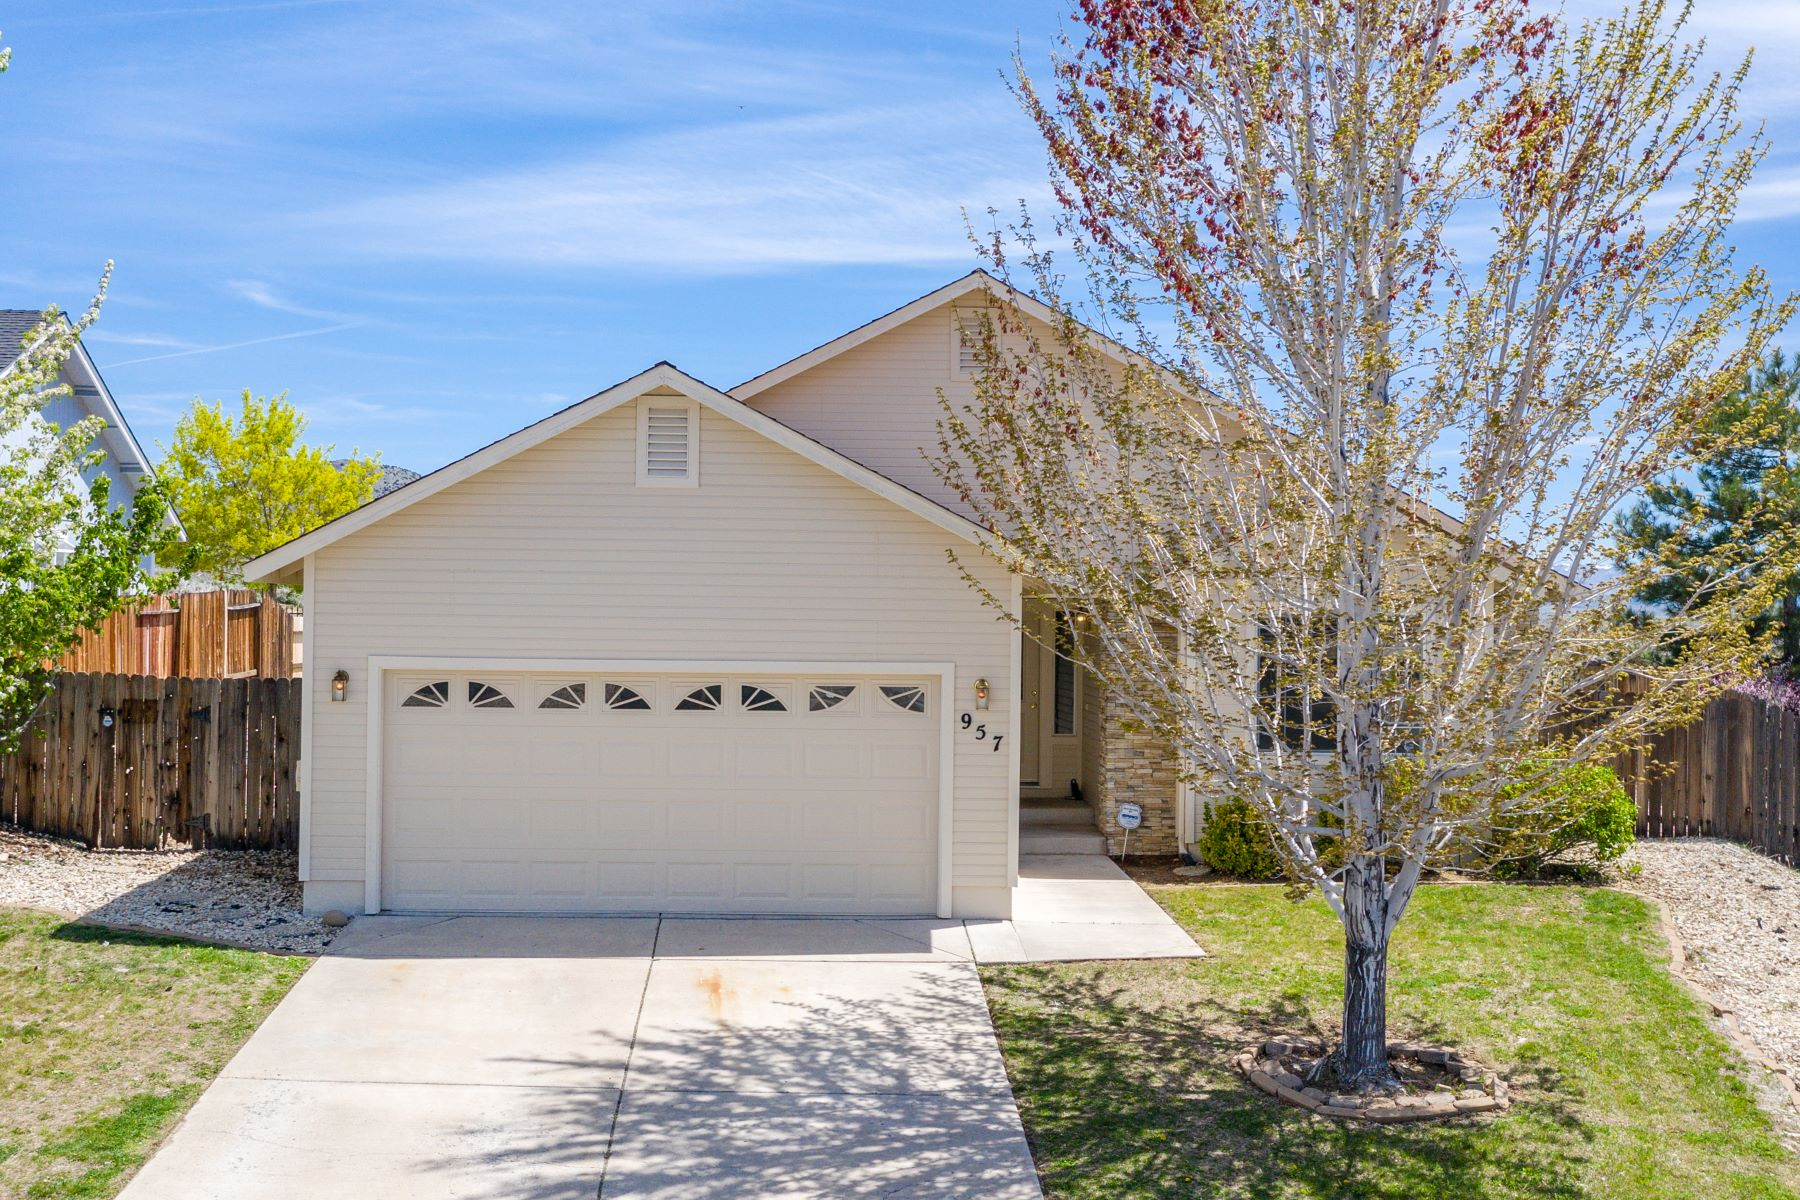 Single Family Home for Active at 957 Ranchview Circle, Carson City, NV 89705 957 Ranchview Circle Carson City, Nevada 89705 United States